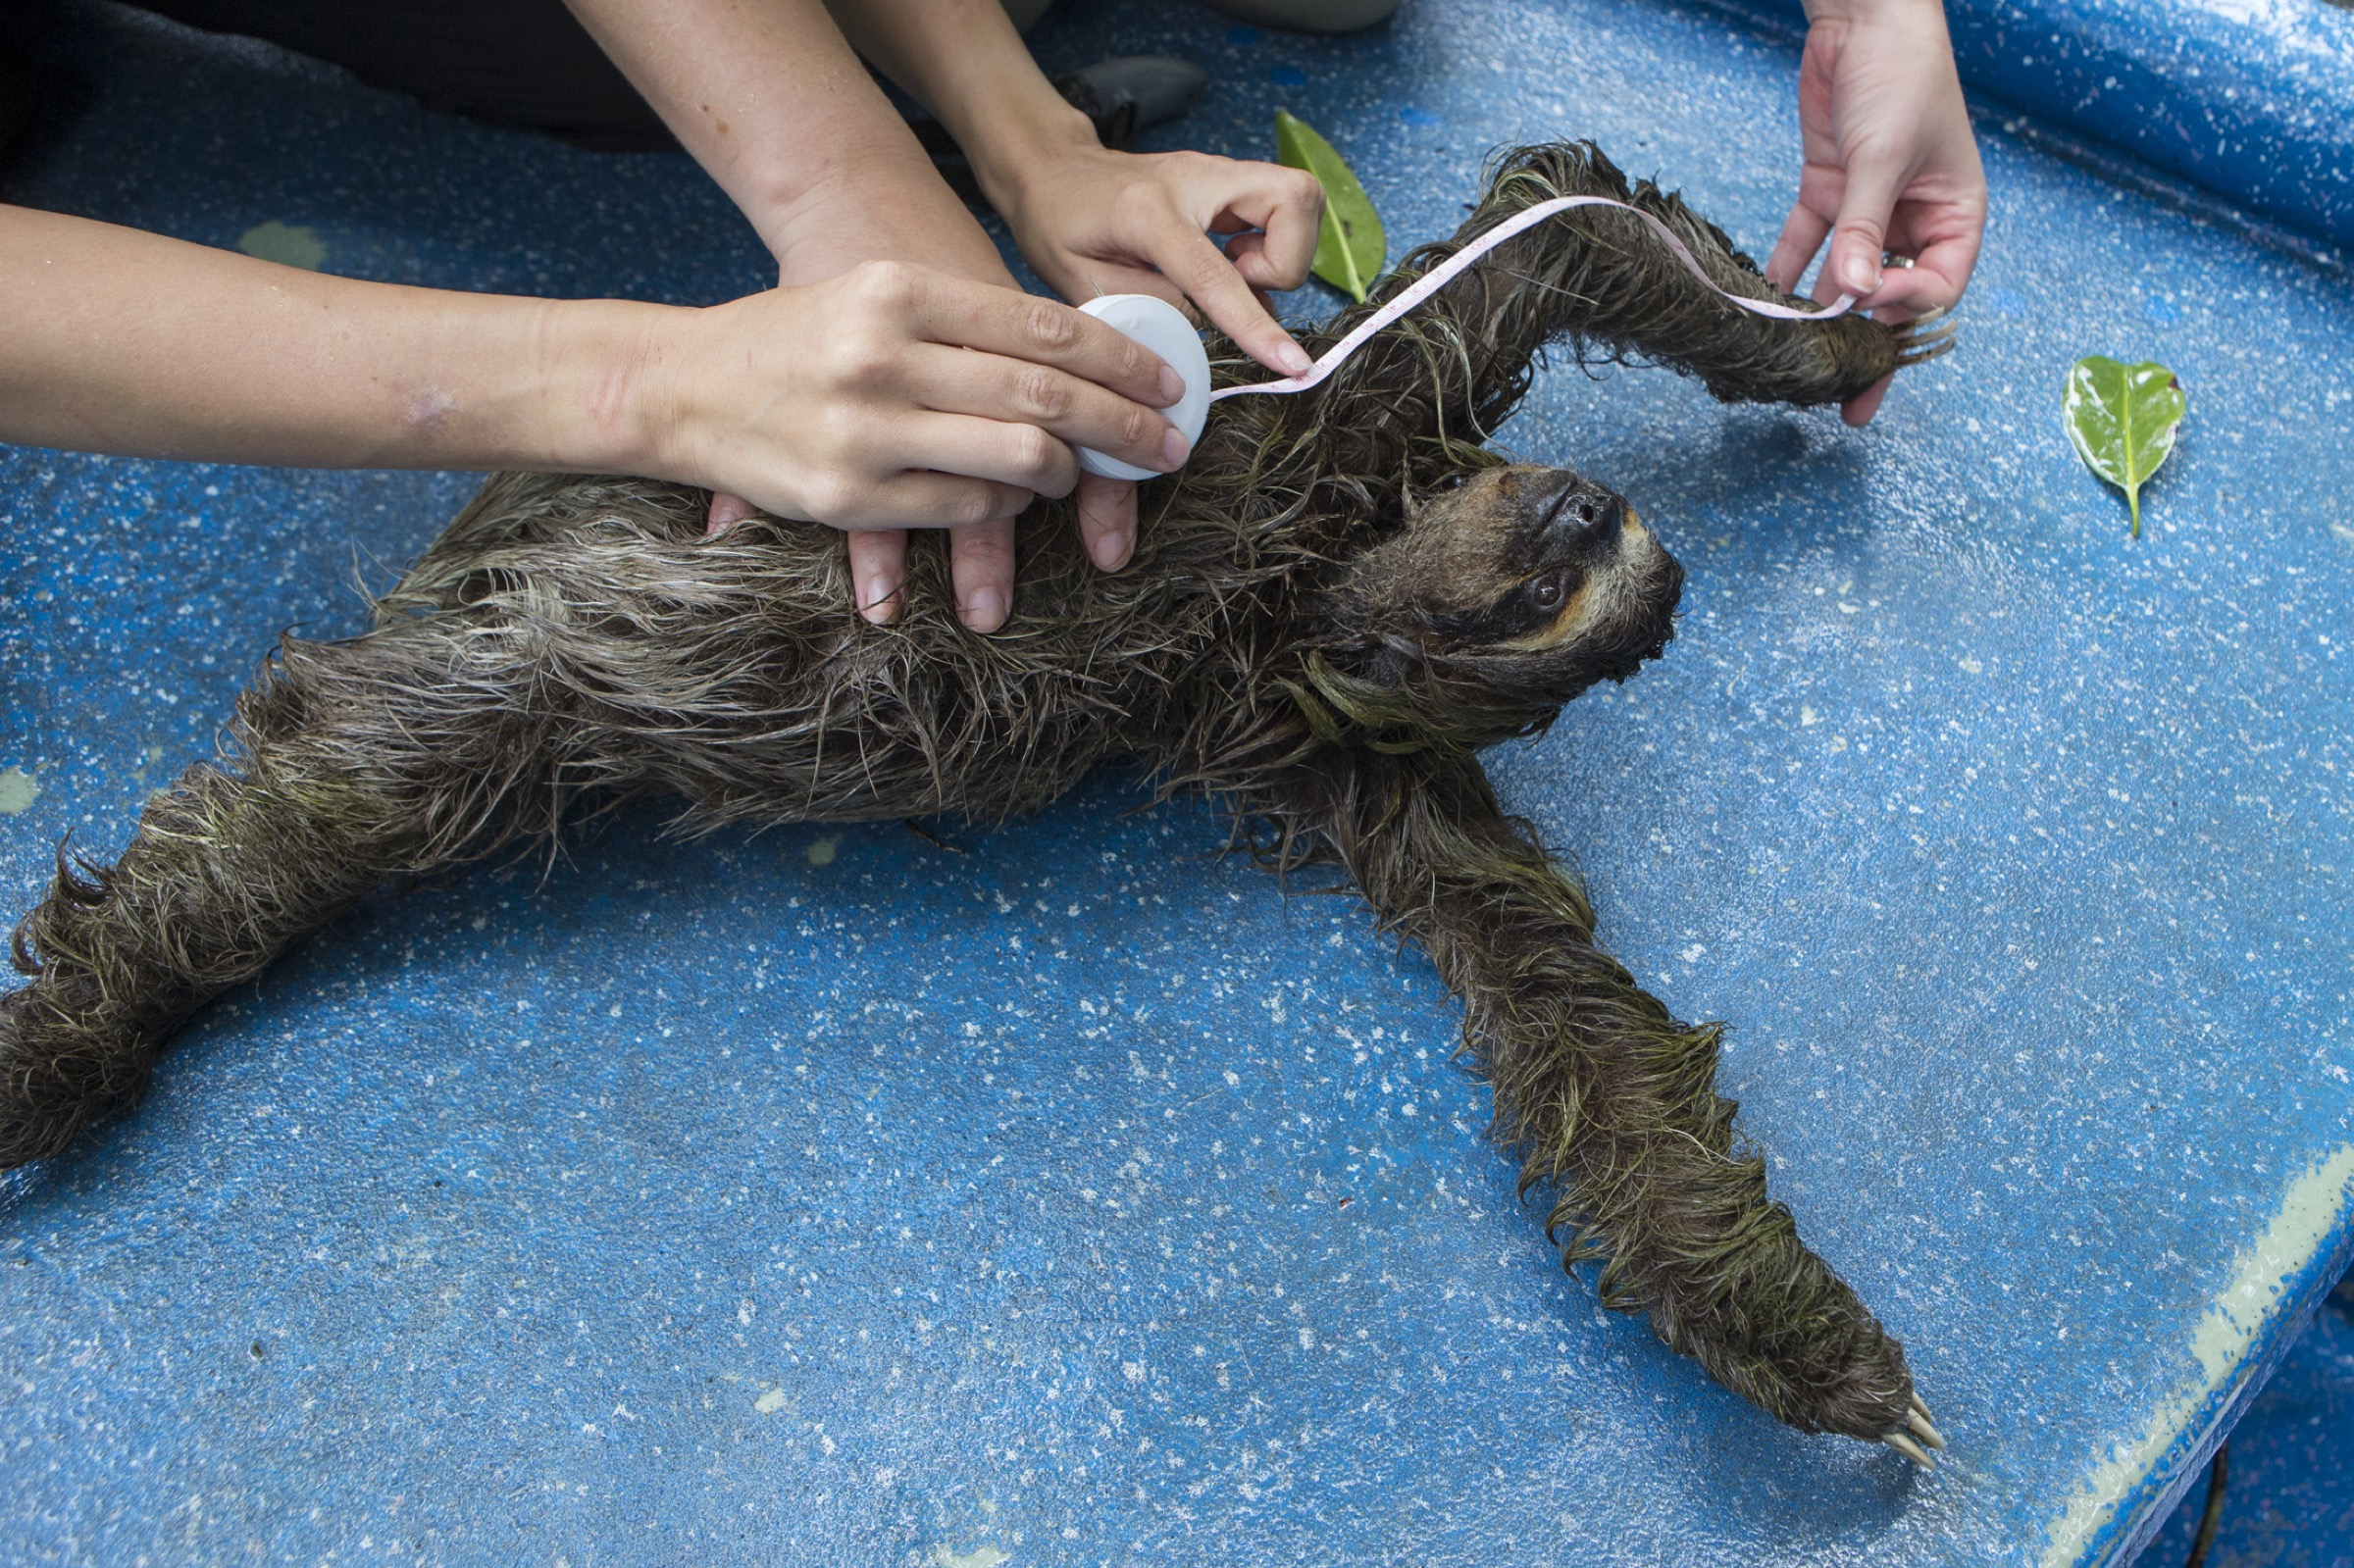 Zoologist Rebecca Cliffe measures the arm length of a pygmy three-toed sloth. Cliffe and her team will compare measurements of sloths here to those of their mainland cousins.